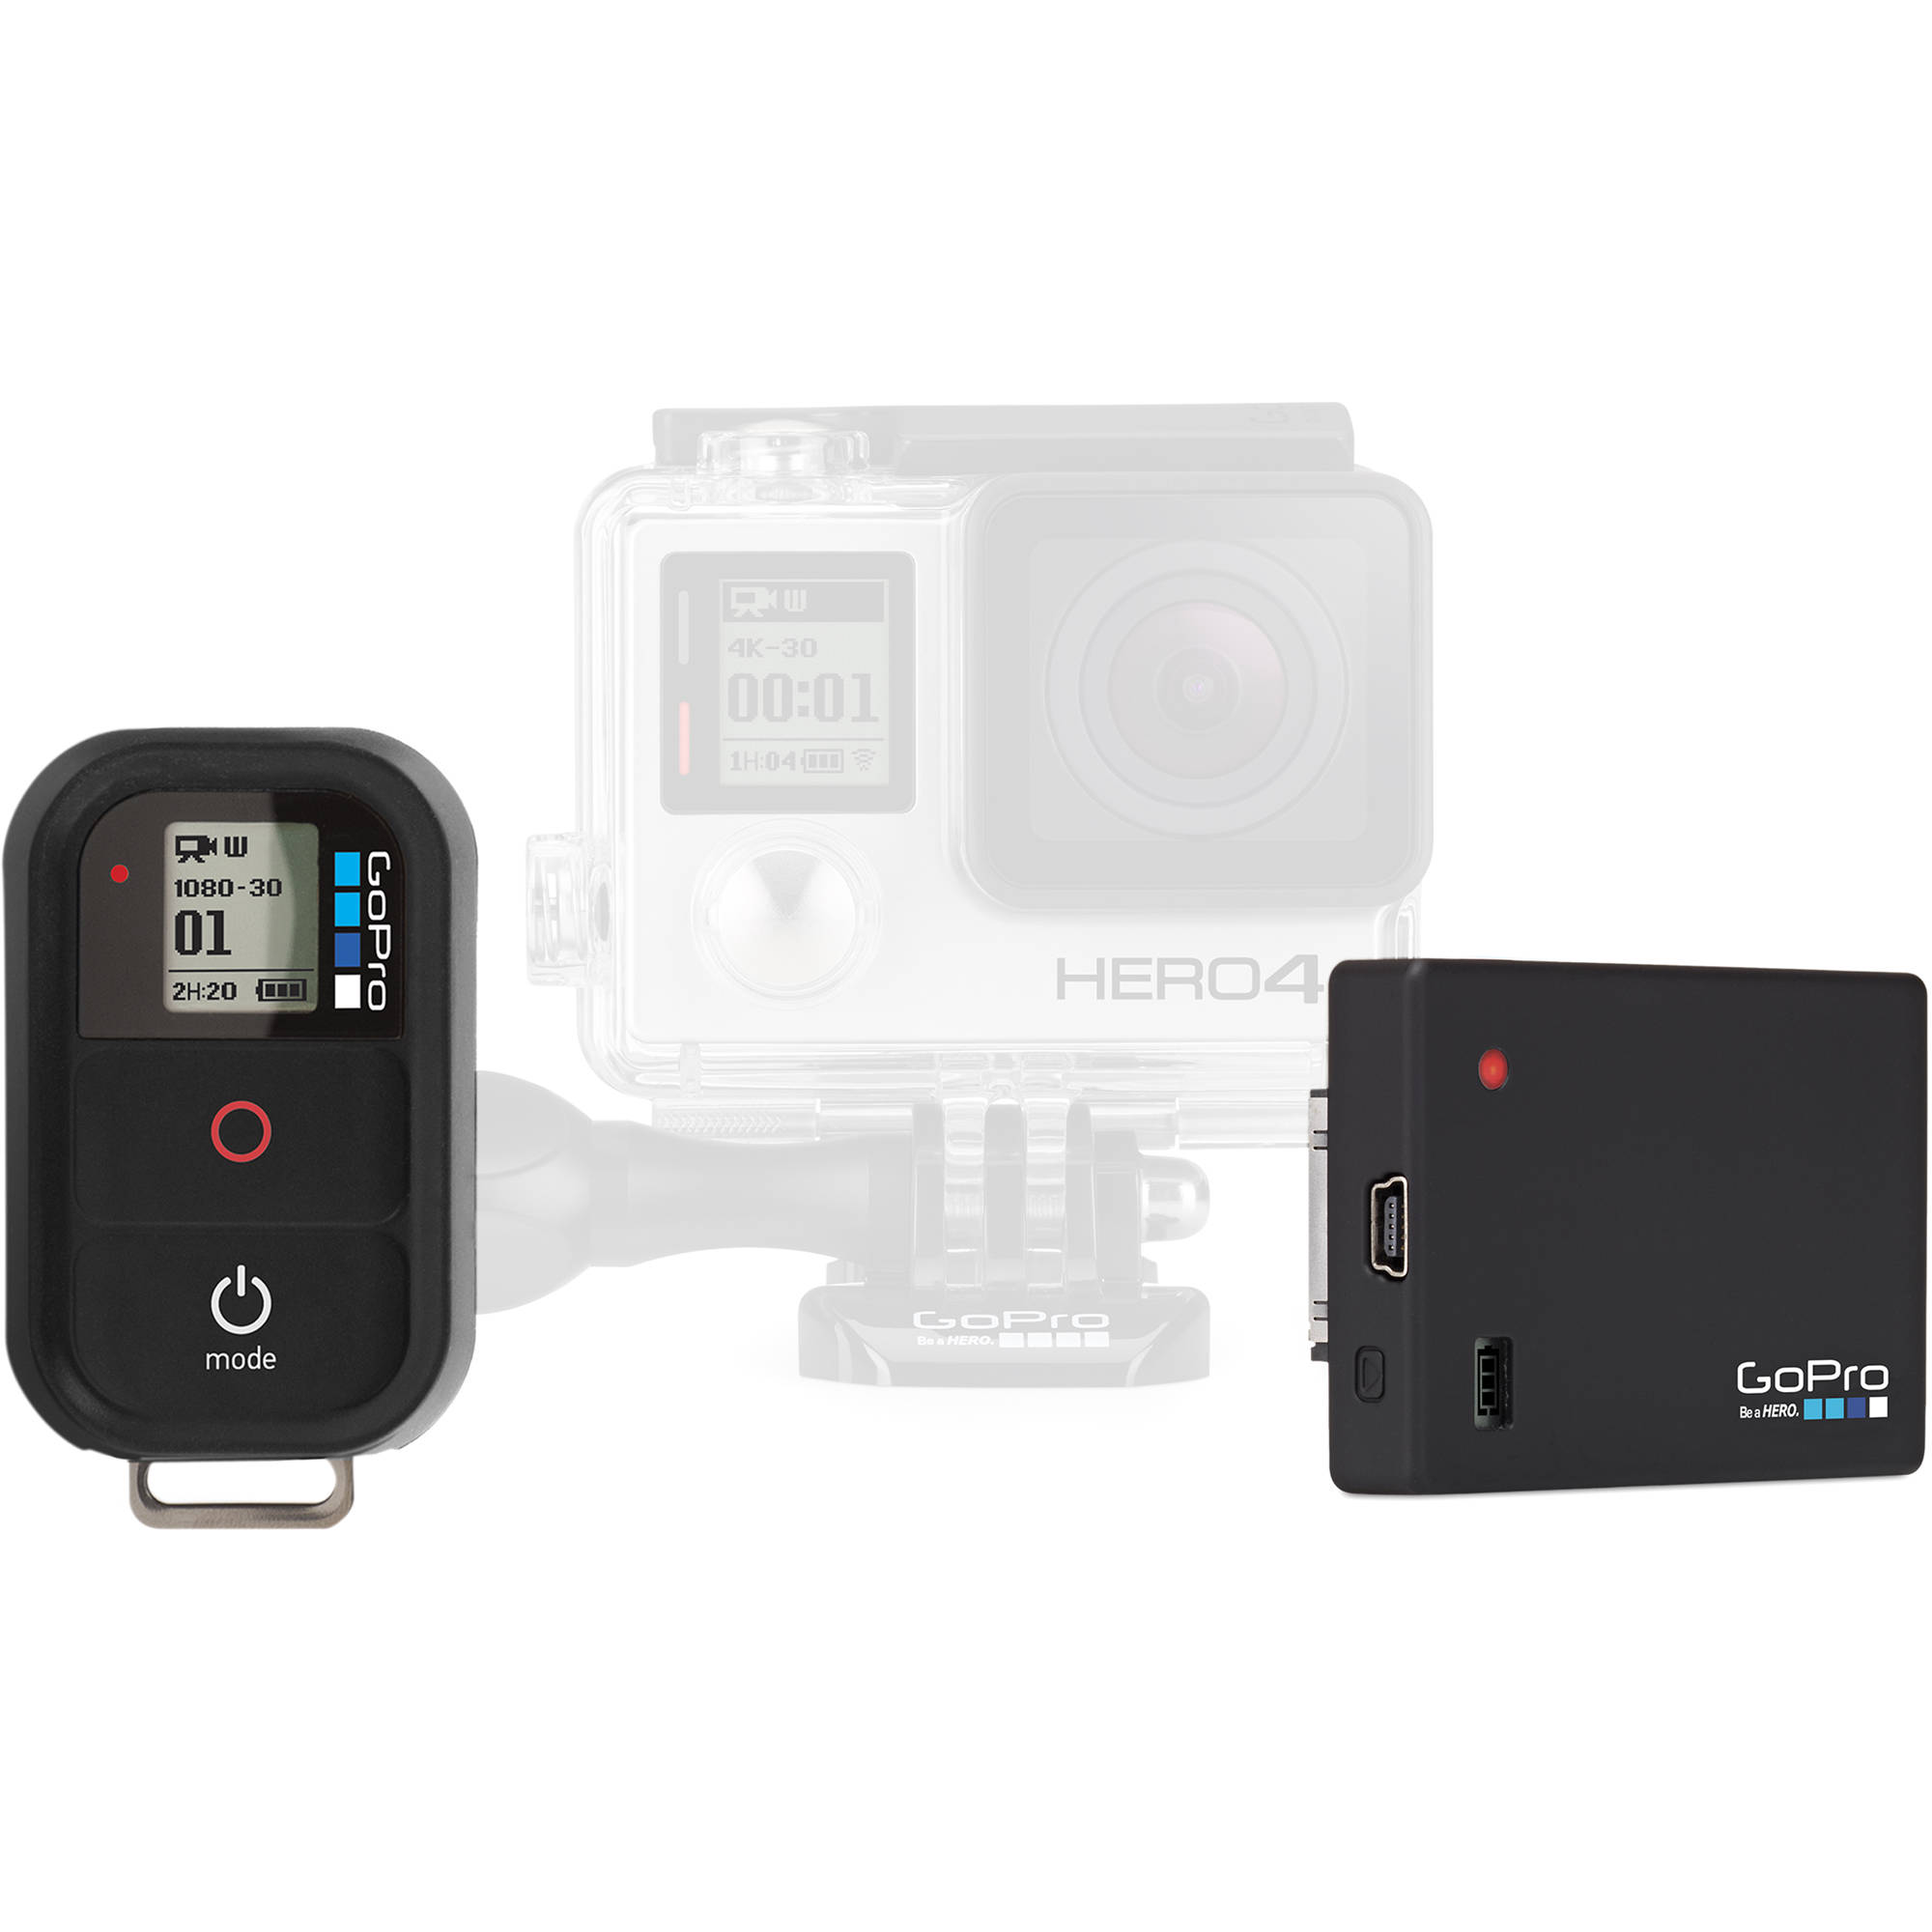 gopro remote 1 0 and battery bacpac bundle arbpb 101 b h photo. Black Bedroom Furniture Sets. Home Design Ideas